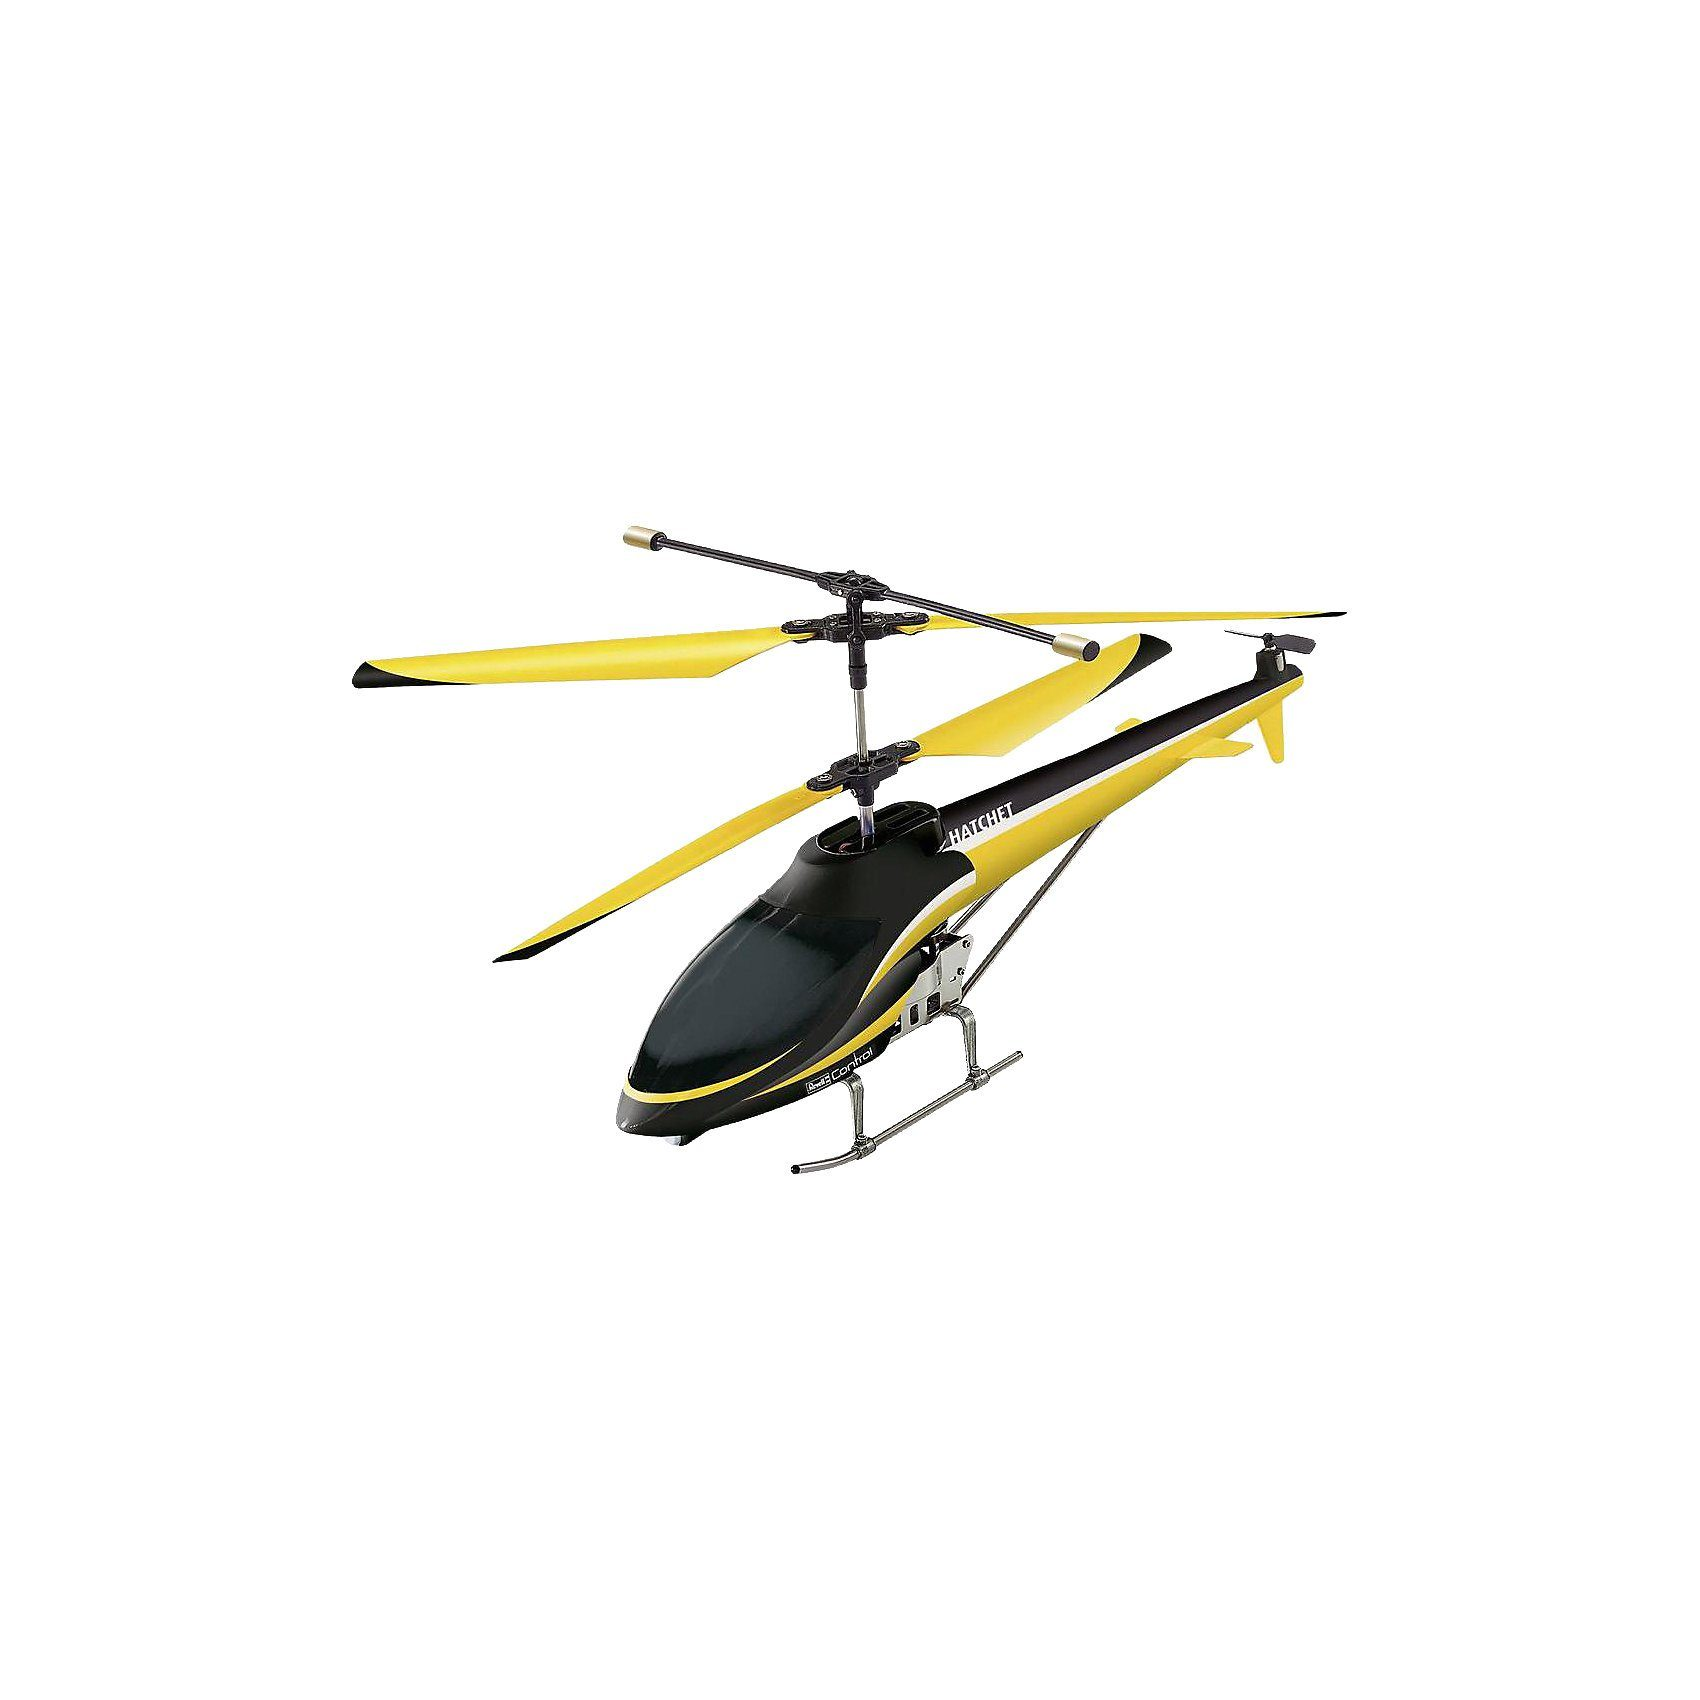 Revell® Control RC Helikopter Hatchet